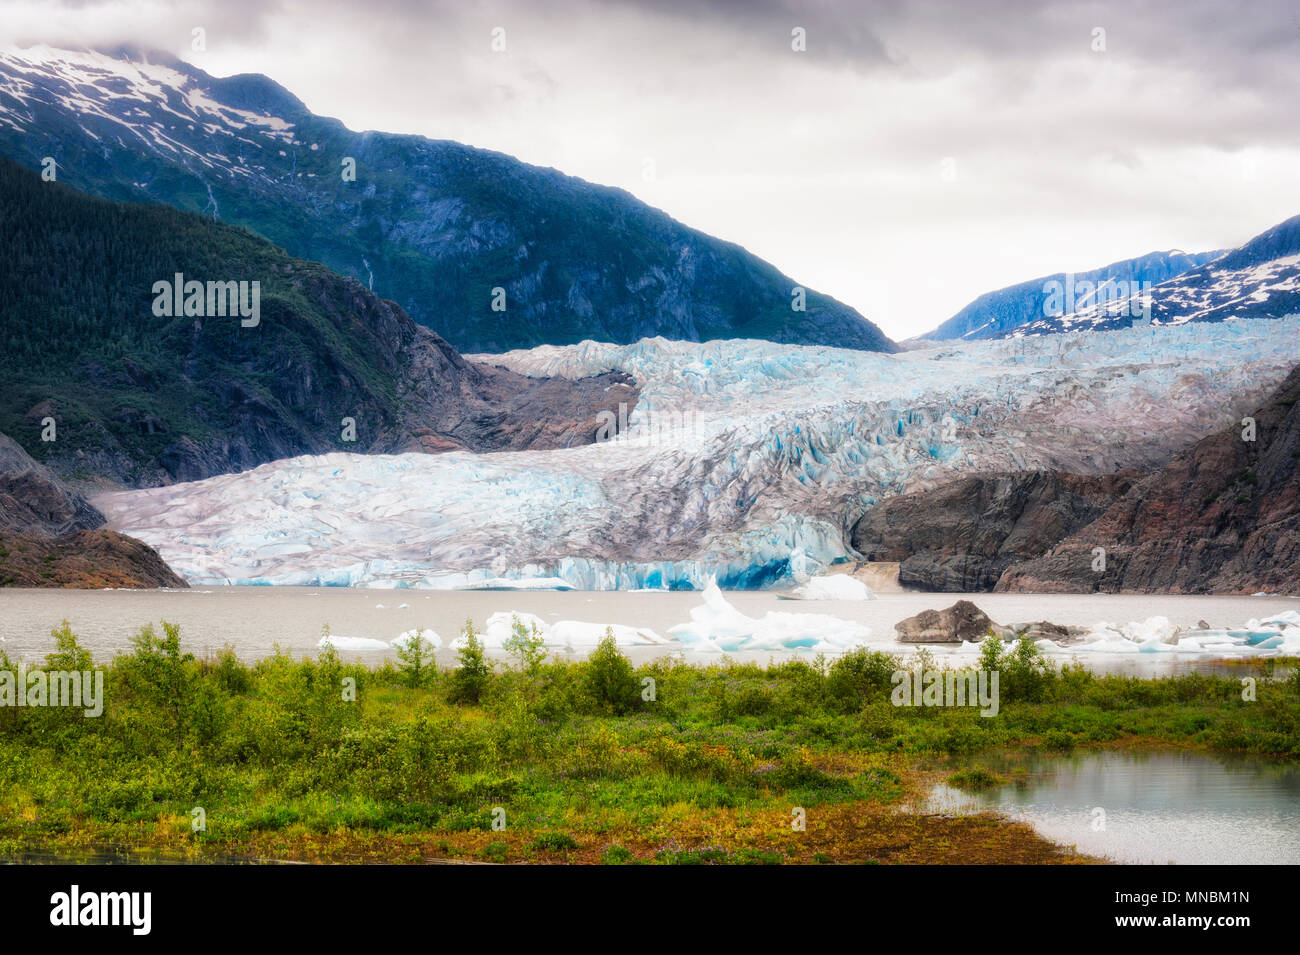 Mendenhall Glaier under cloudy skies in Tongass National Forest in Alaska. Proglacial lake with chunks of ice floating on it's surface forms at the gl - Stock Image